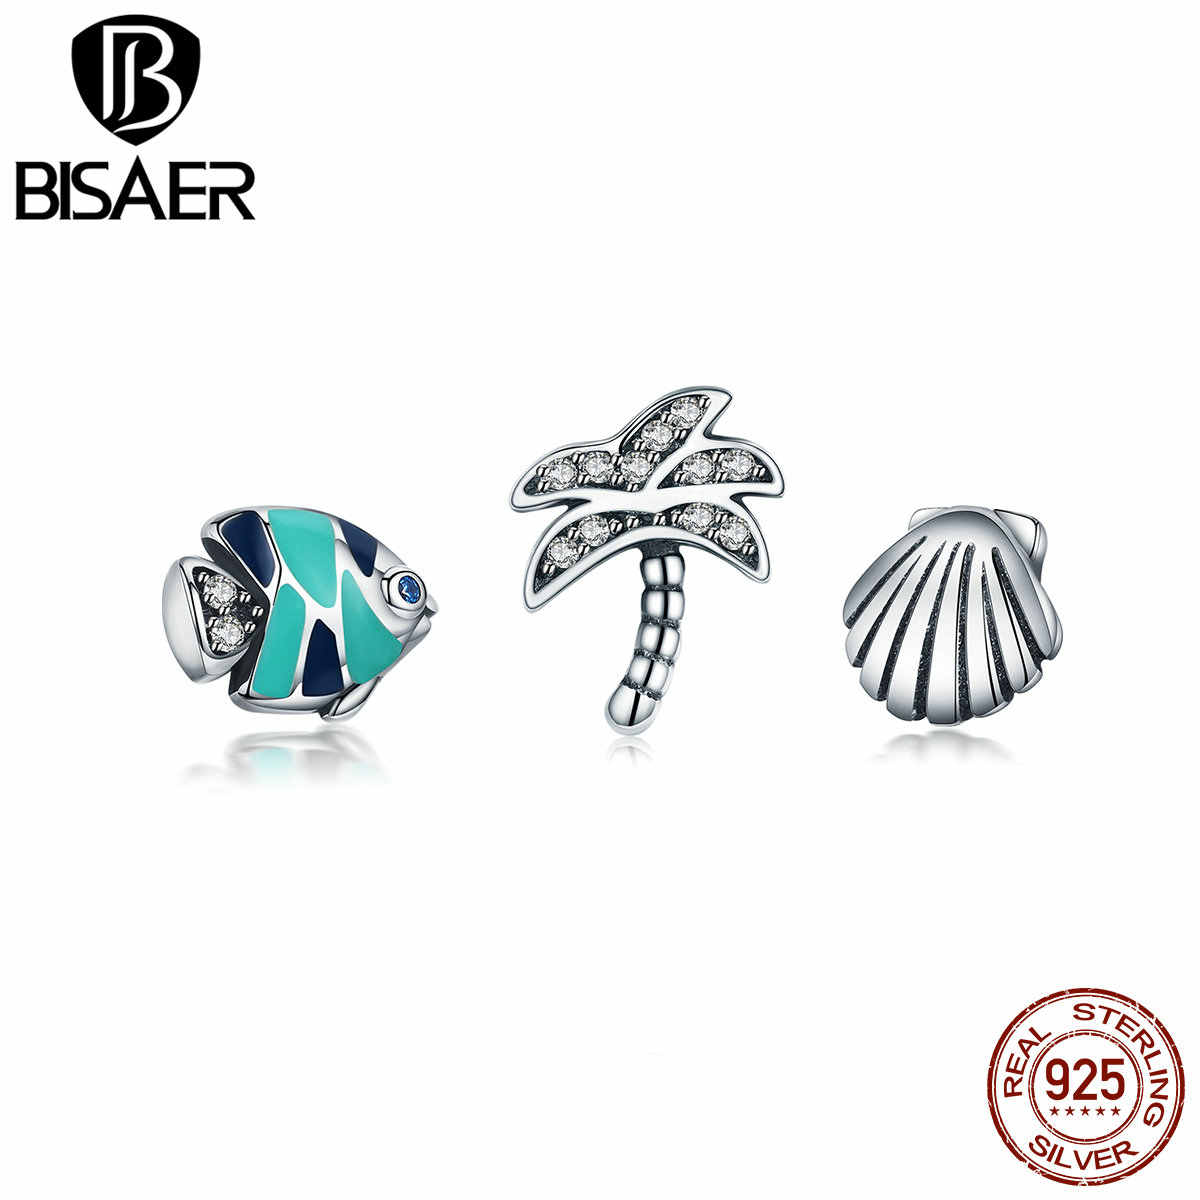 BISAER 925 Sterling Silver Palm Tree Sea Shell Colorful Fish Tropical Paradise Petites, Mixed Enamel Charms Fit Charms Bracelet